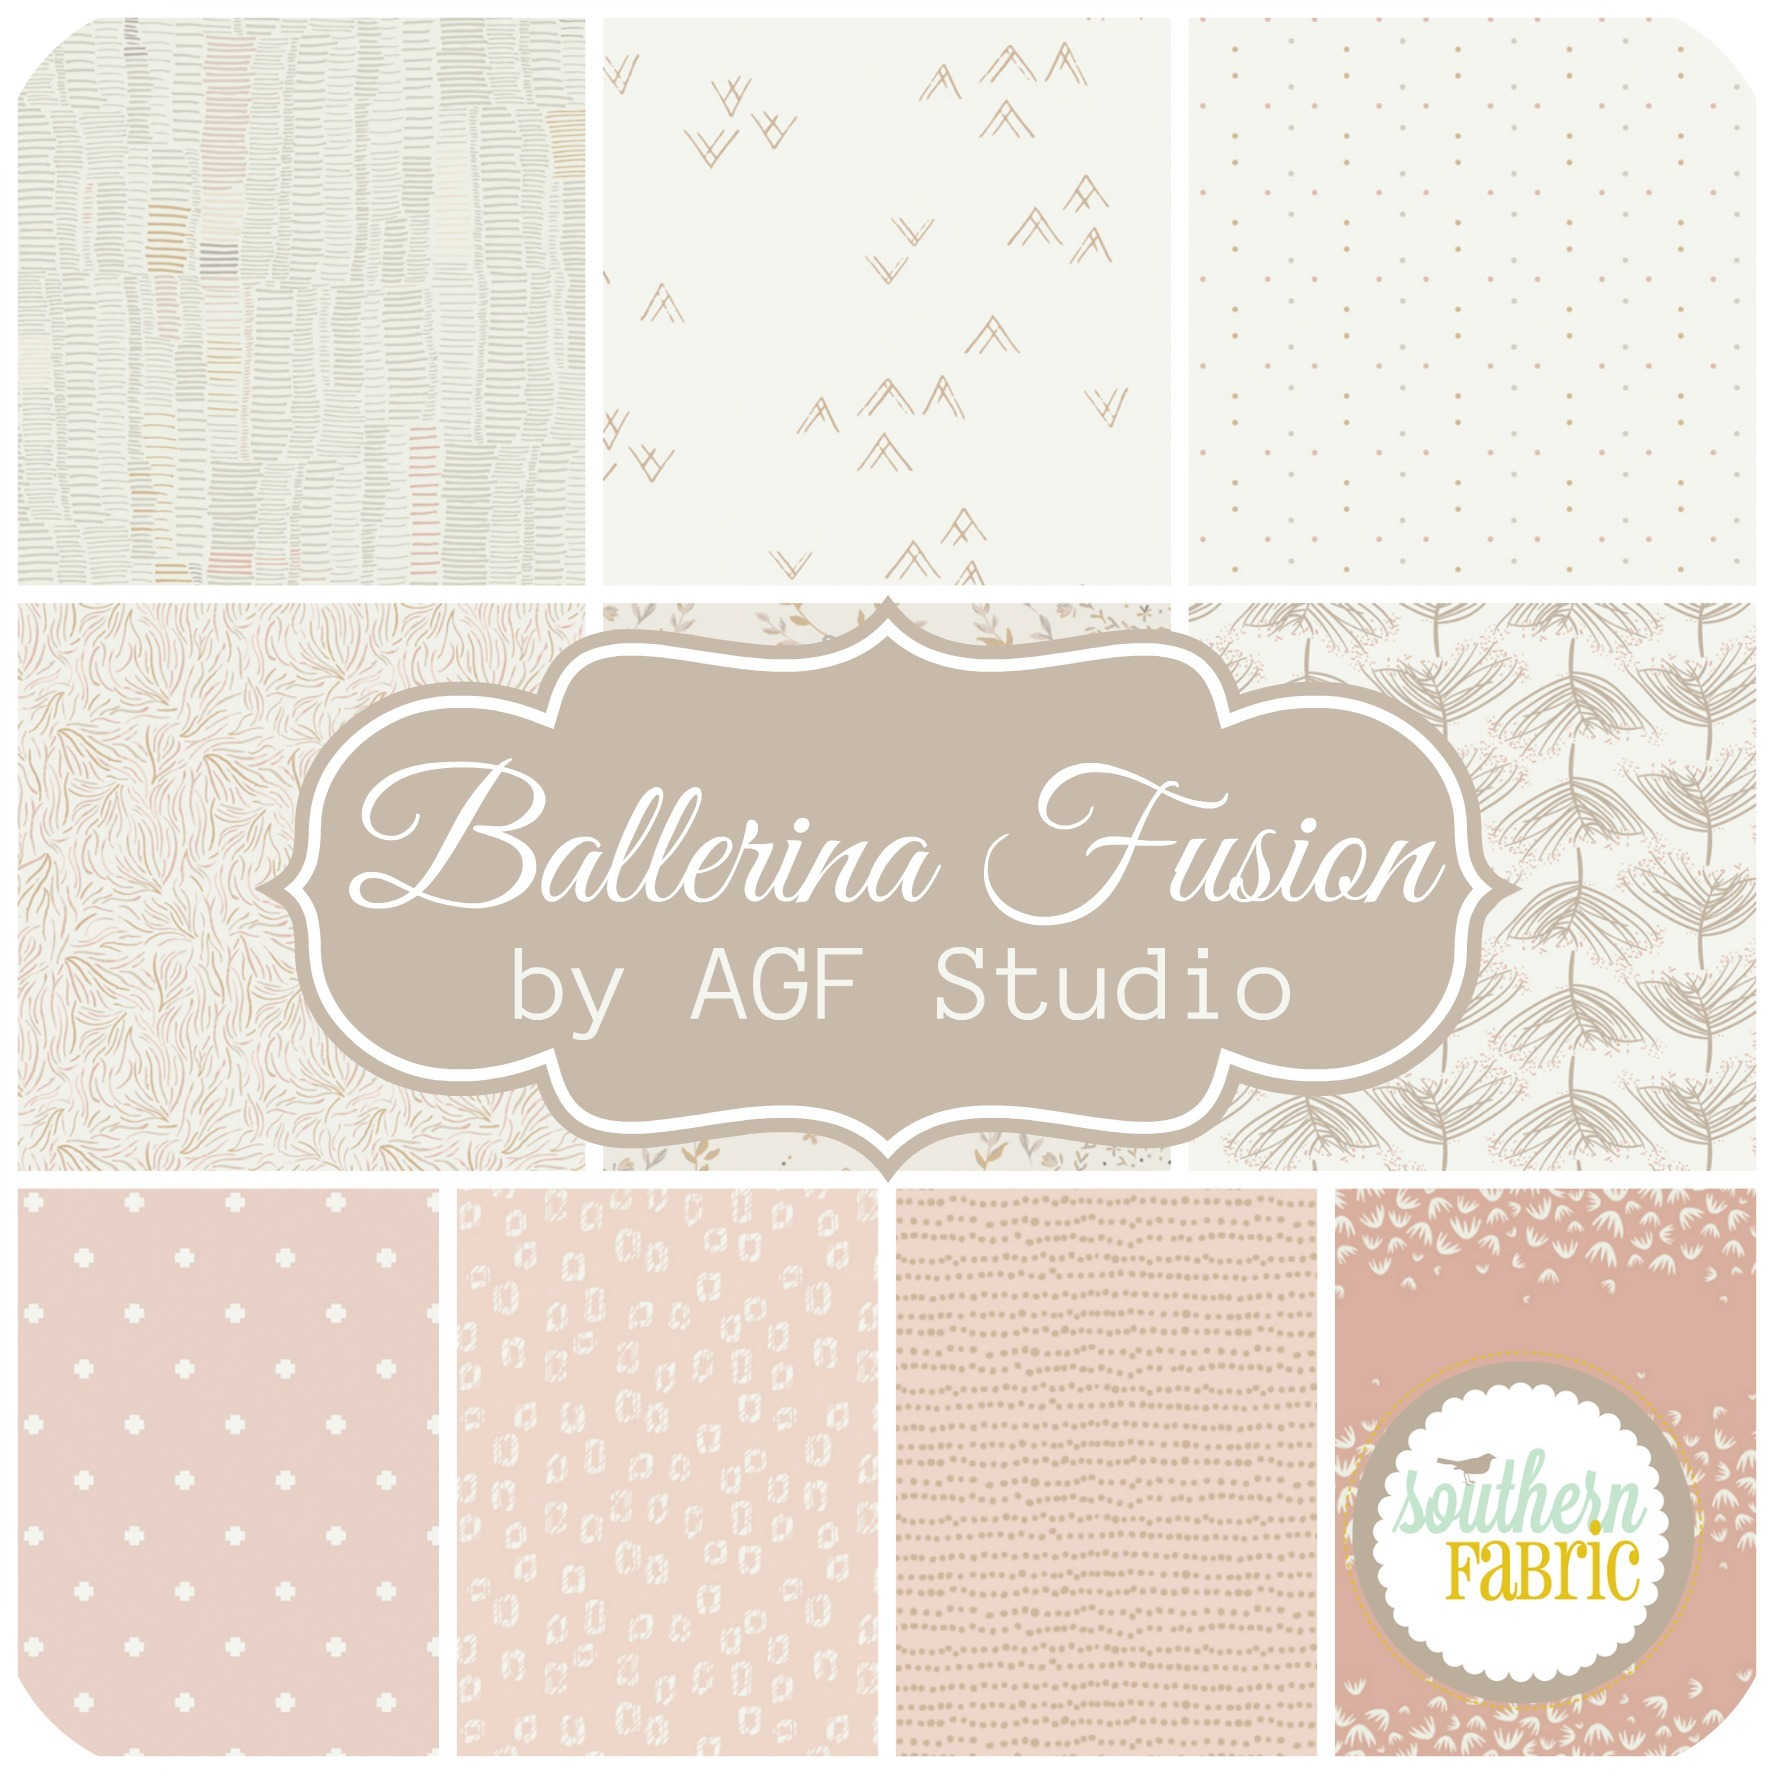 Ballerina Fusion by AGF Studio